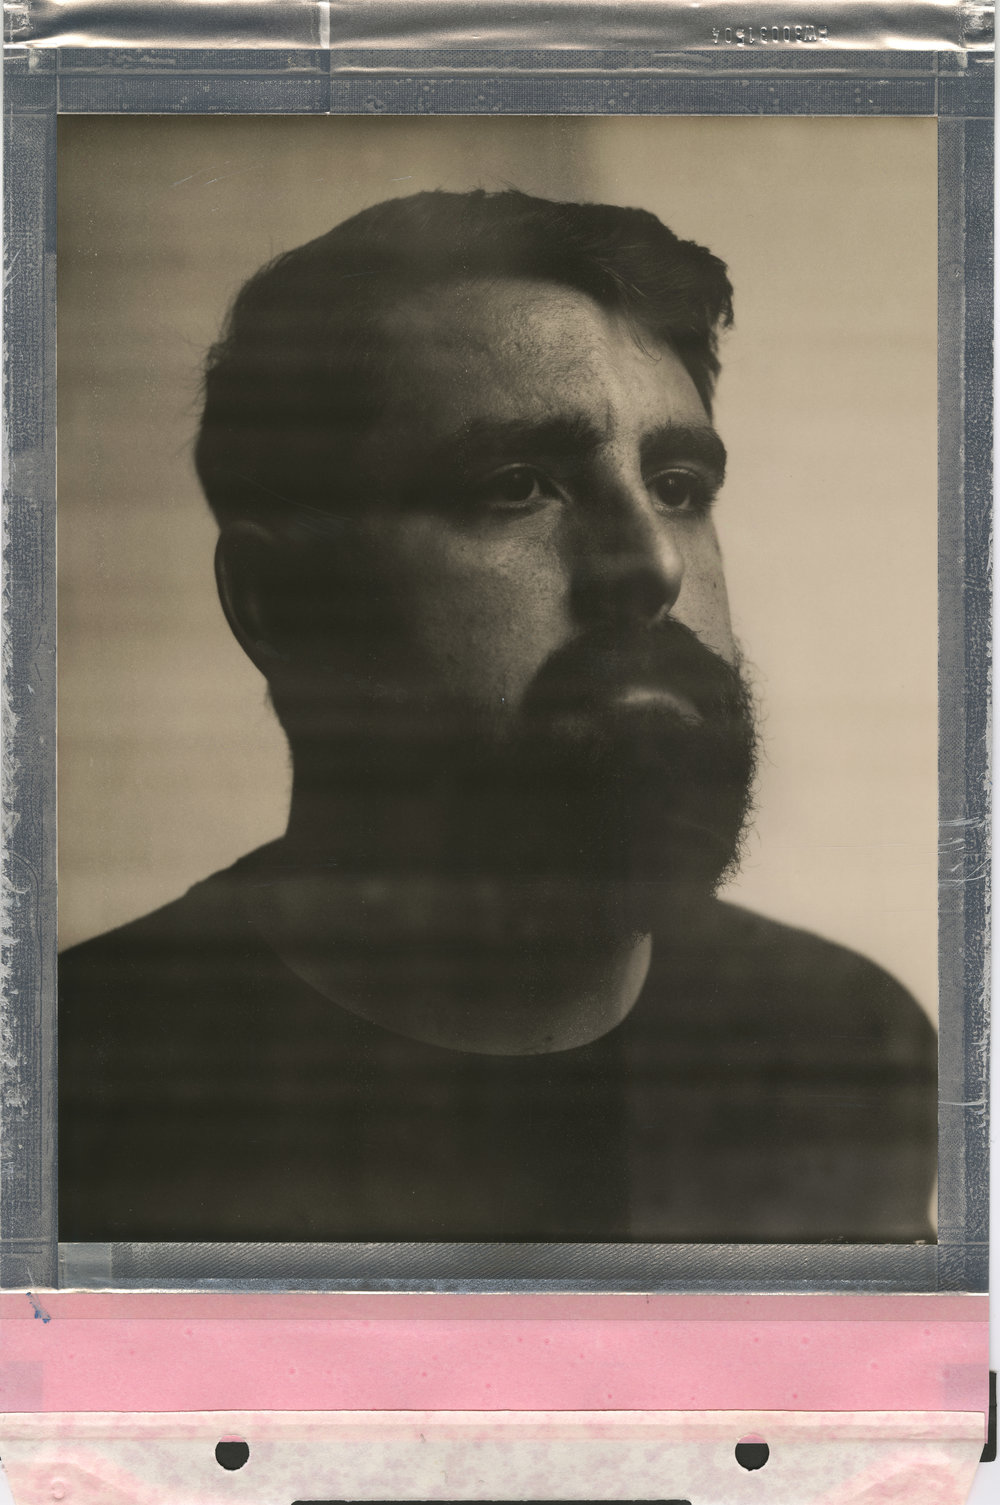 Impossible Project instant film-by Shaun Schroth